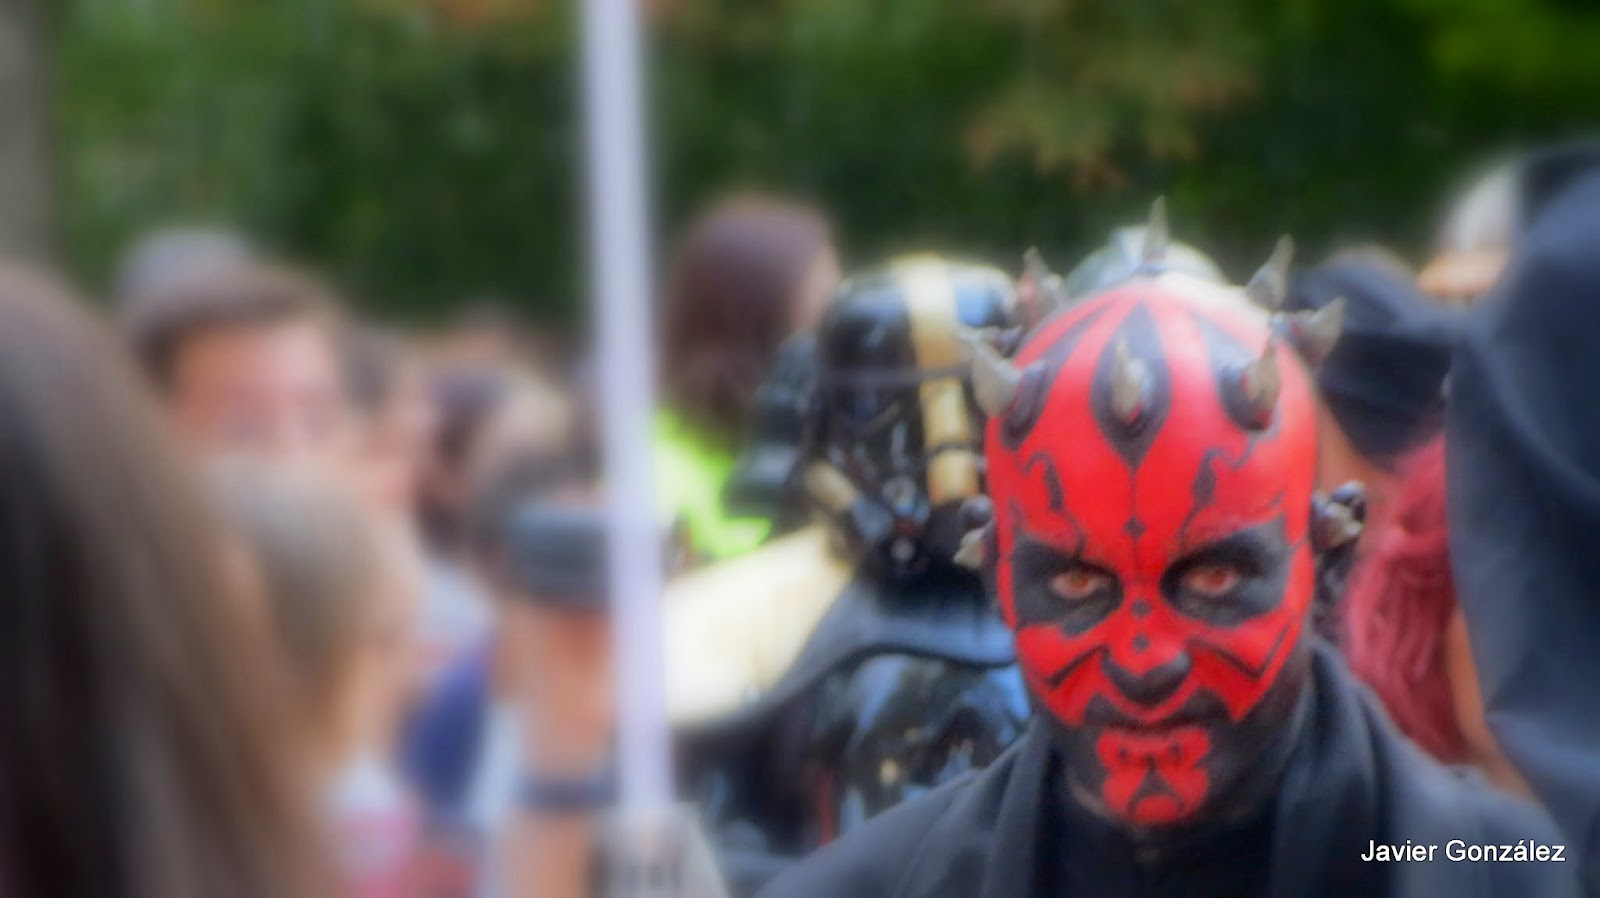 Las tropas de Darth Vader de Star Wars invaden Madrid.